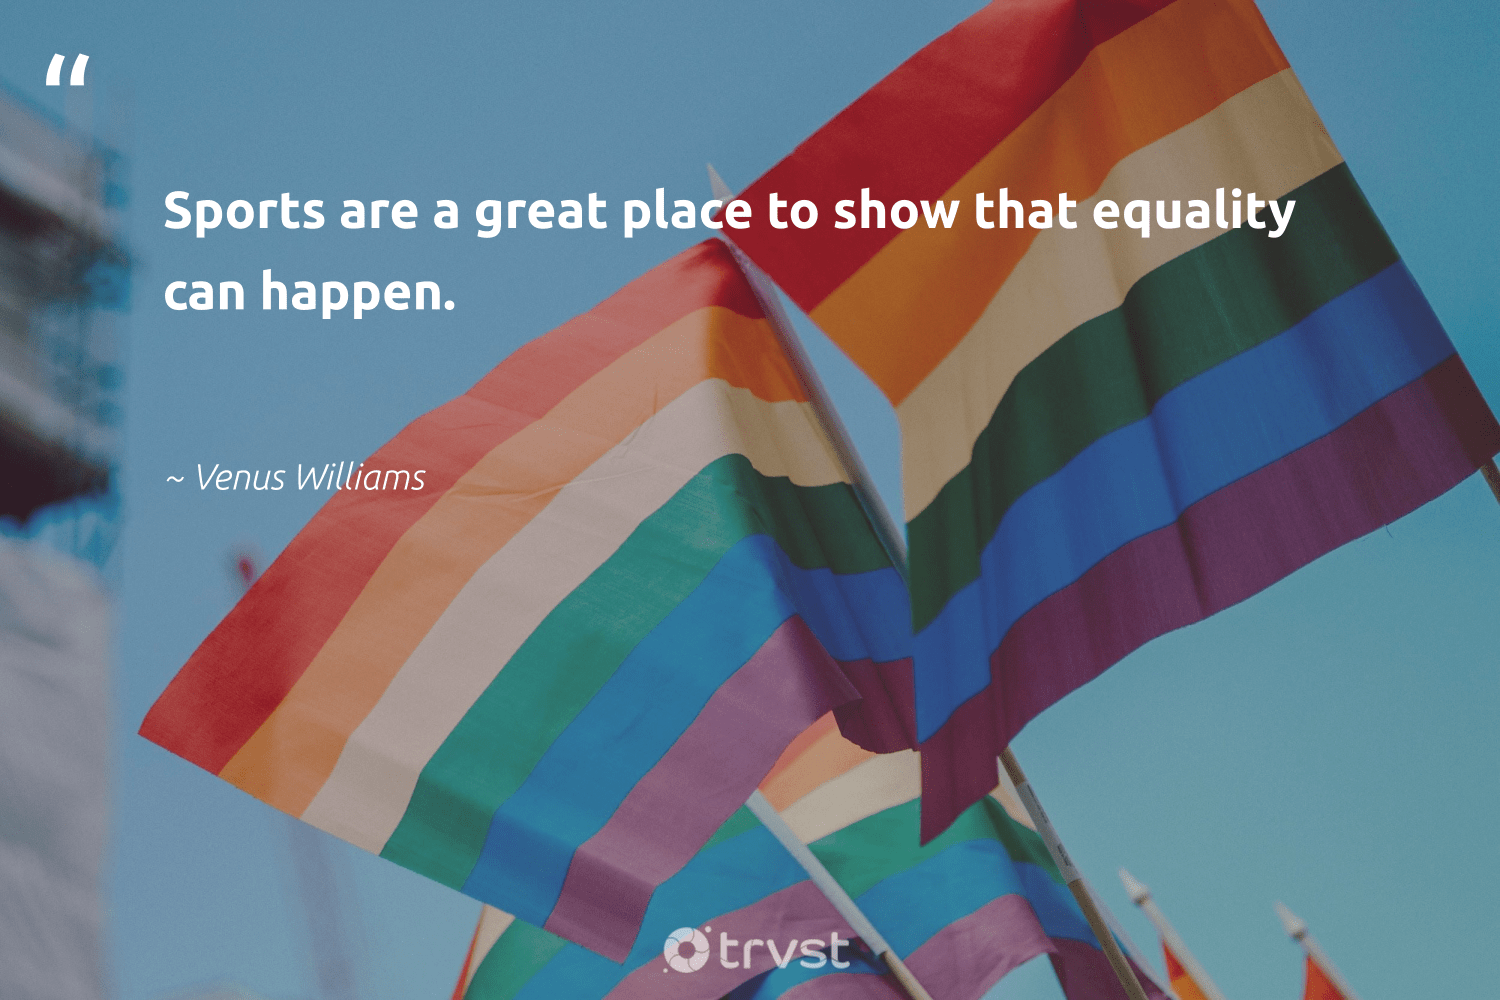 """Sports are a great place to show that equality can happen.""  - Venus Williams #trvst #quotes #equality #empowerment #weareallone #socialchange #dotherightthing #equalopportunity #makeadifference #socialgood #thinkgreen #equalrights"